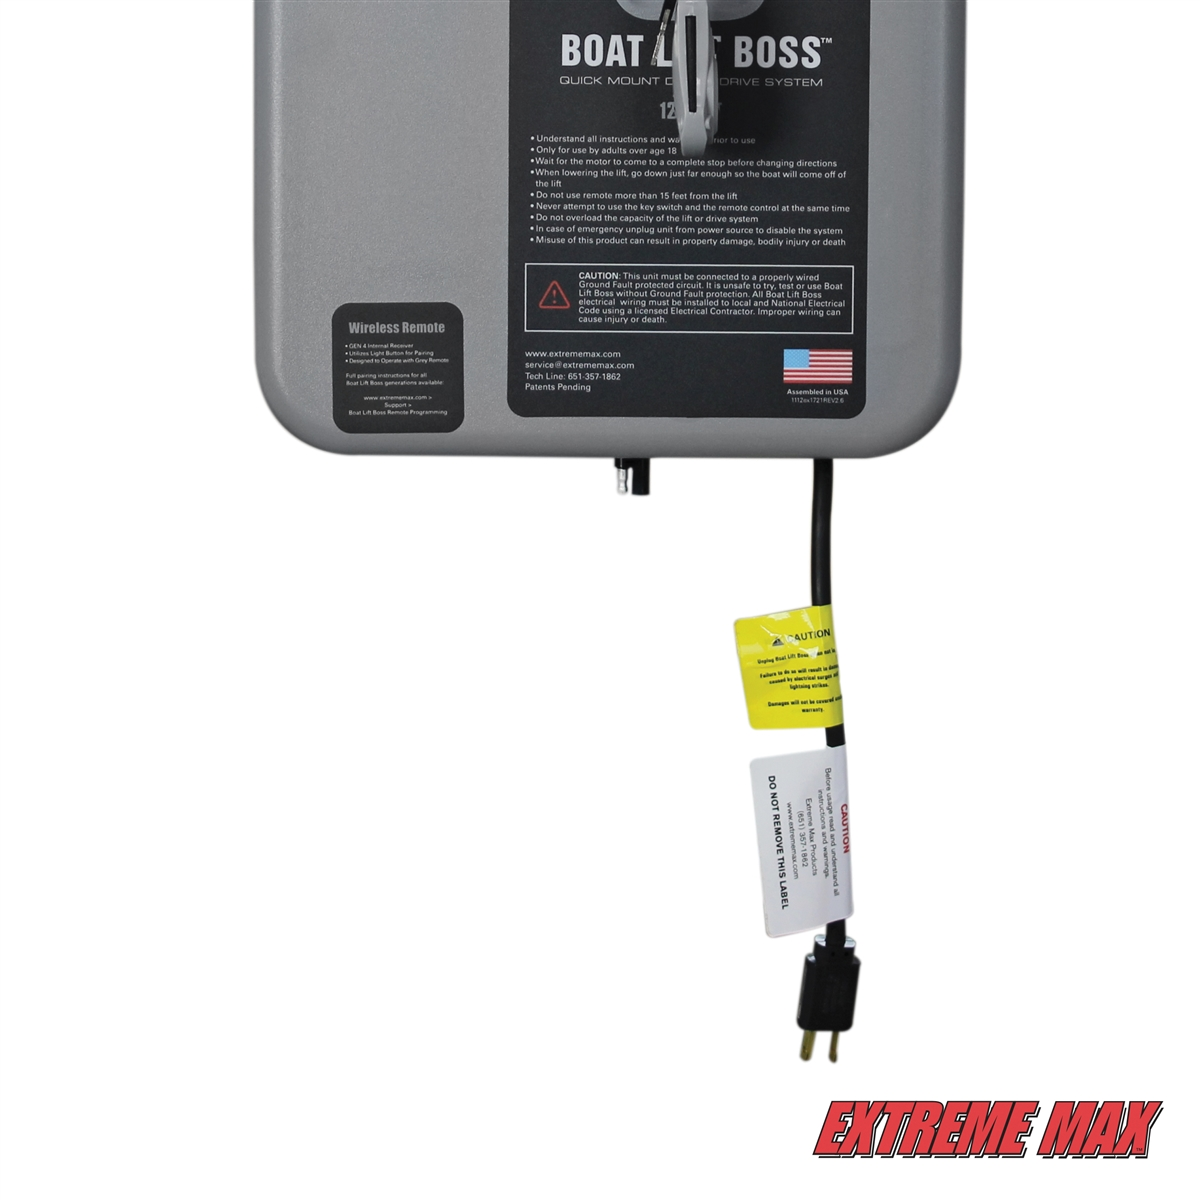 hight resolution of extreme max 3006 4512 boat lift boss direct drive system 120v w wireless remote